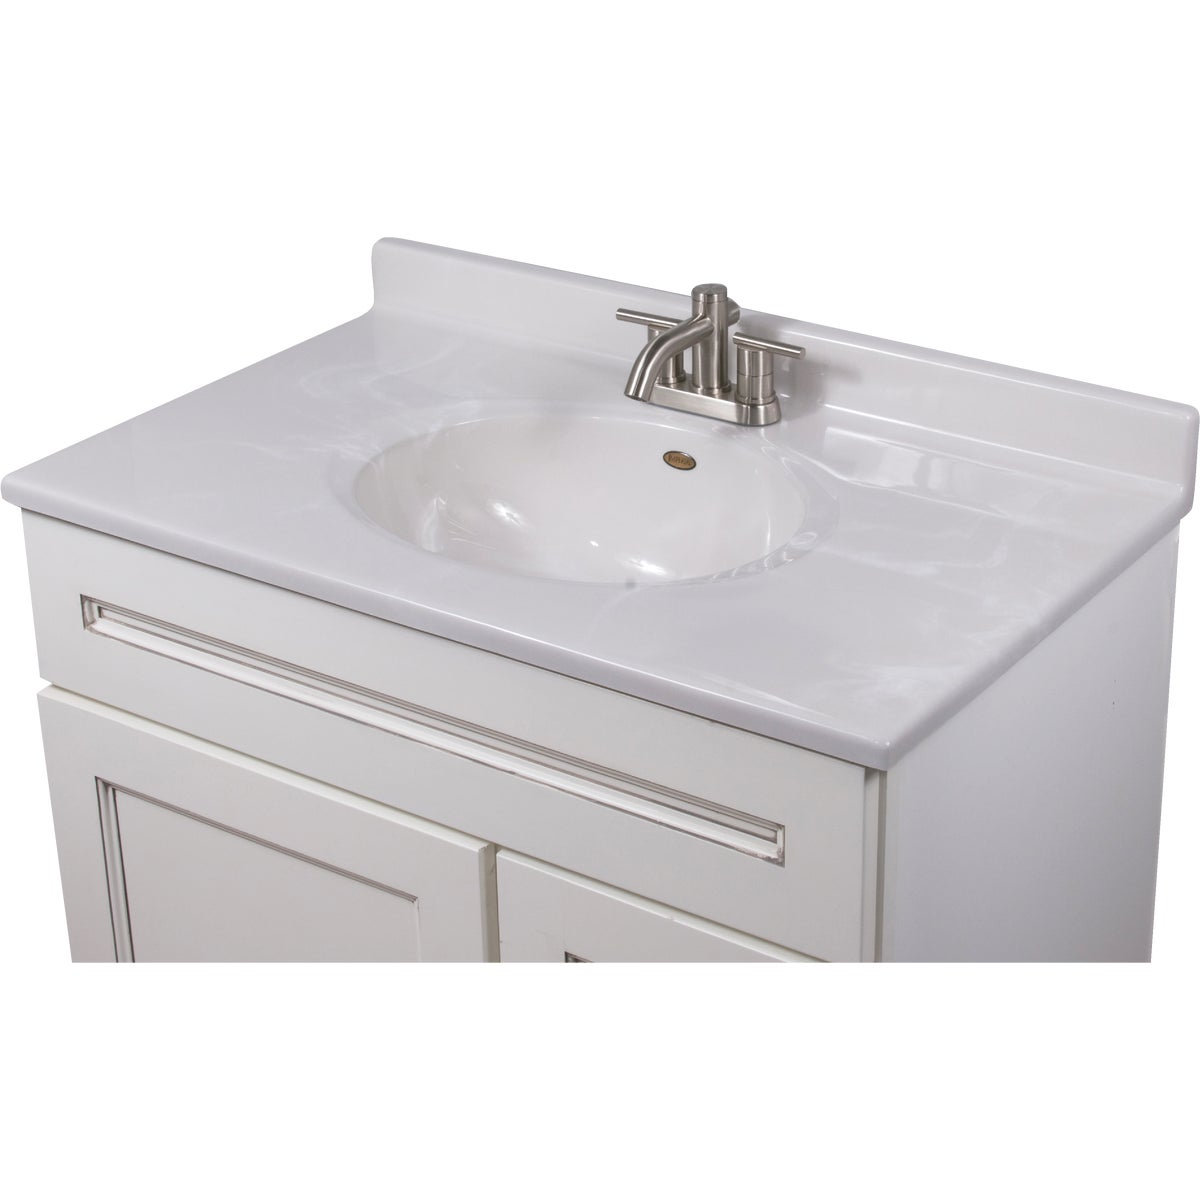 37X22 WHT/WHT VANITY TOP - VC3722W by Imperial Marble Corp